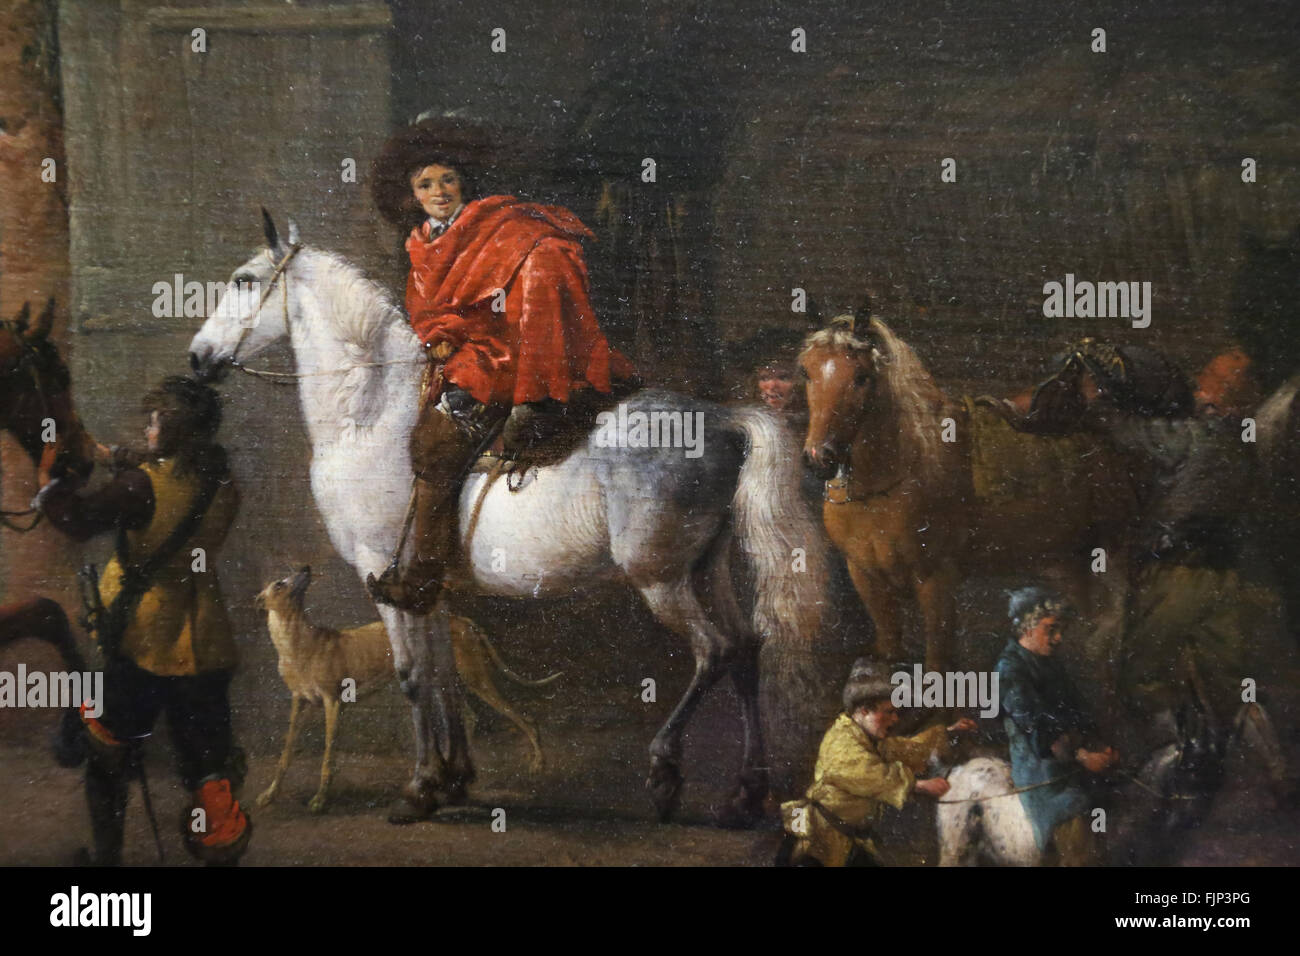 Philips Wouwerman (1619-1668). Dutch painter. Outgoing riders of a stable. 1650-1660. Louvre Museum. Paris. France. - Stock Image